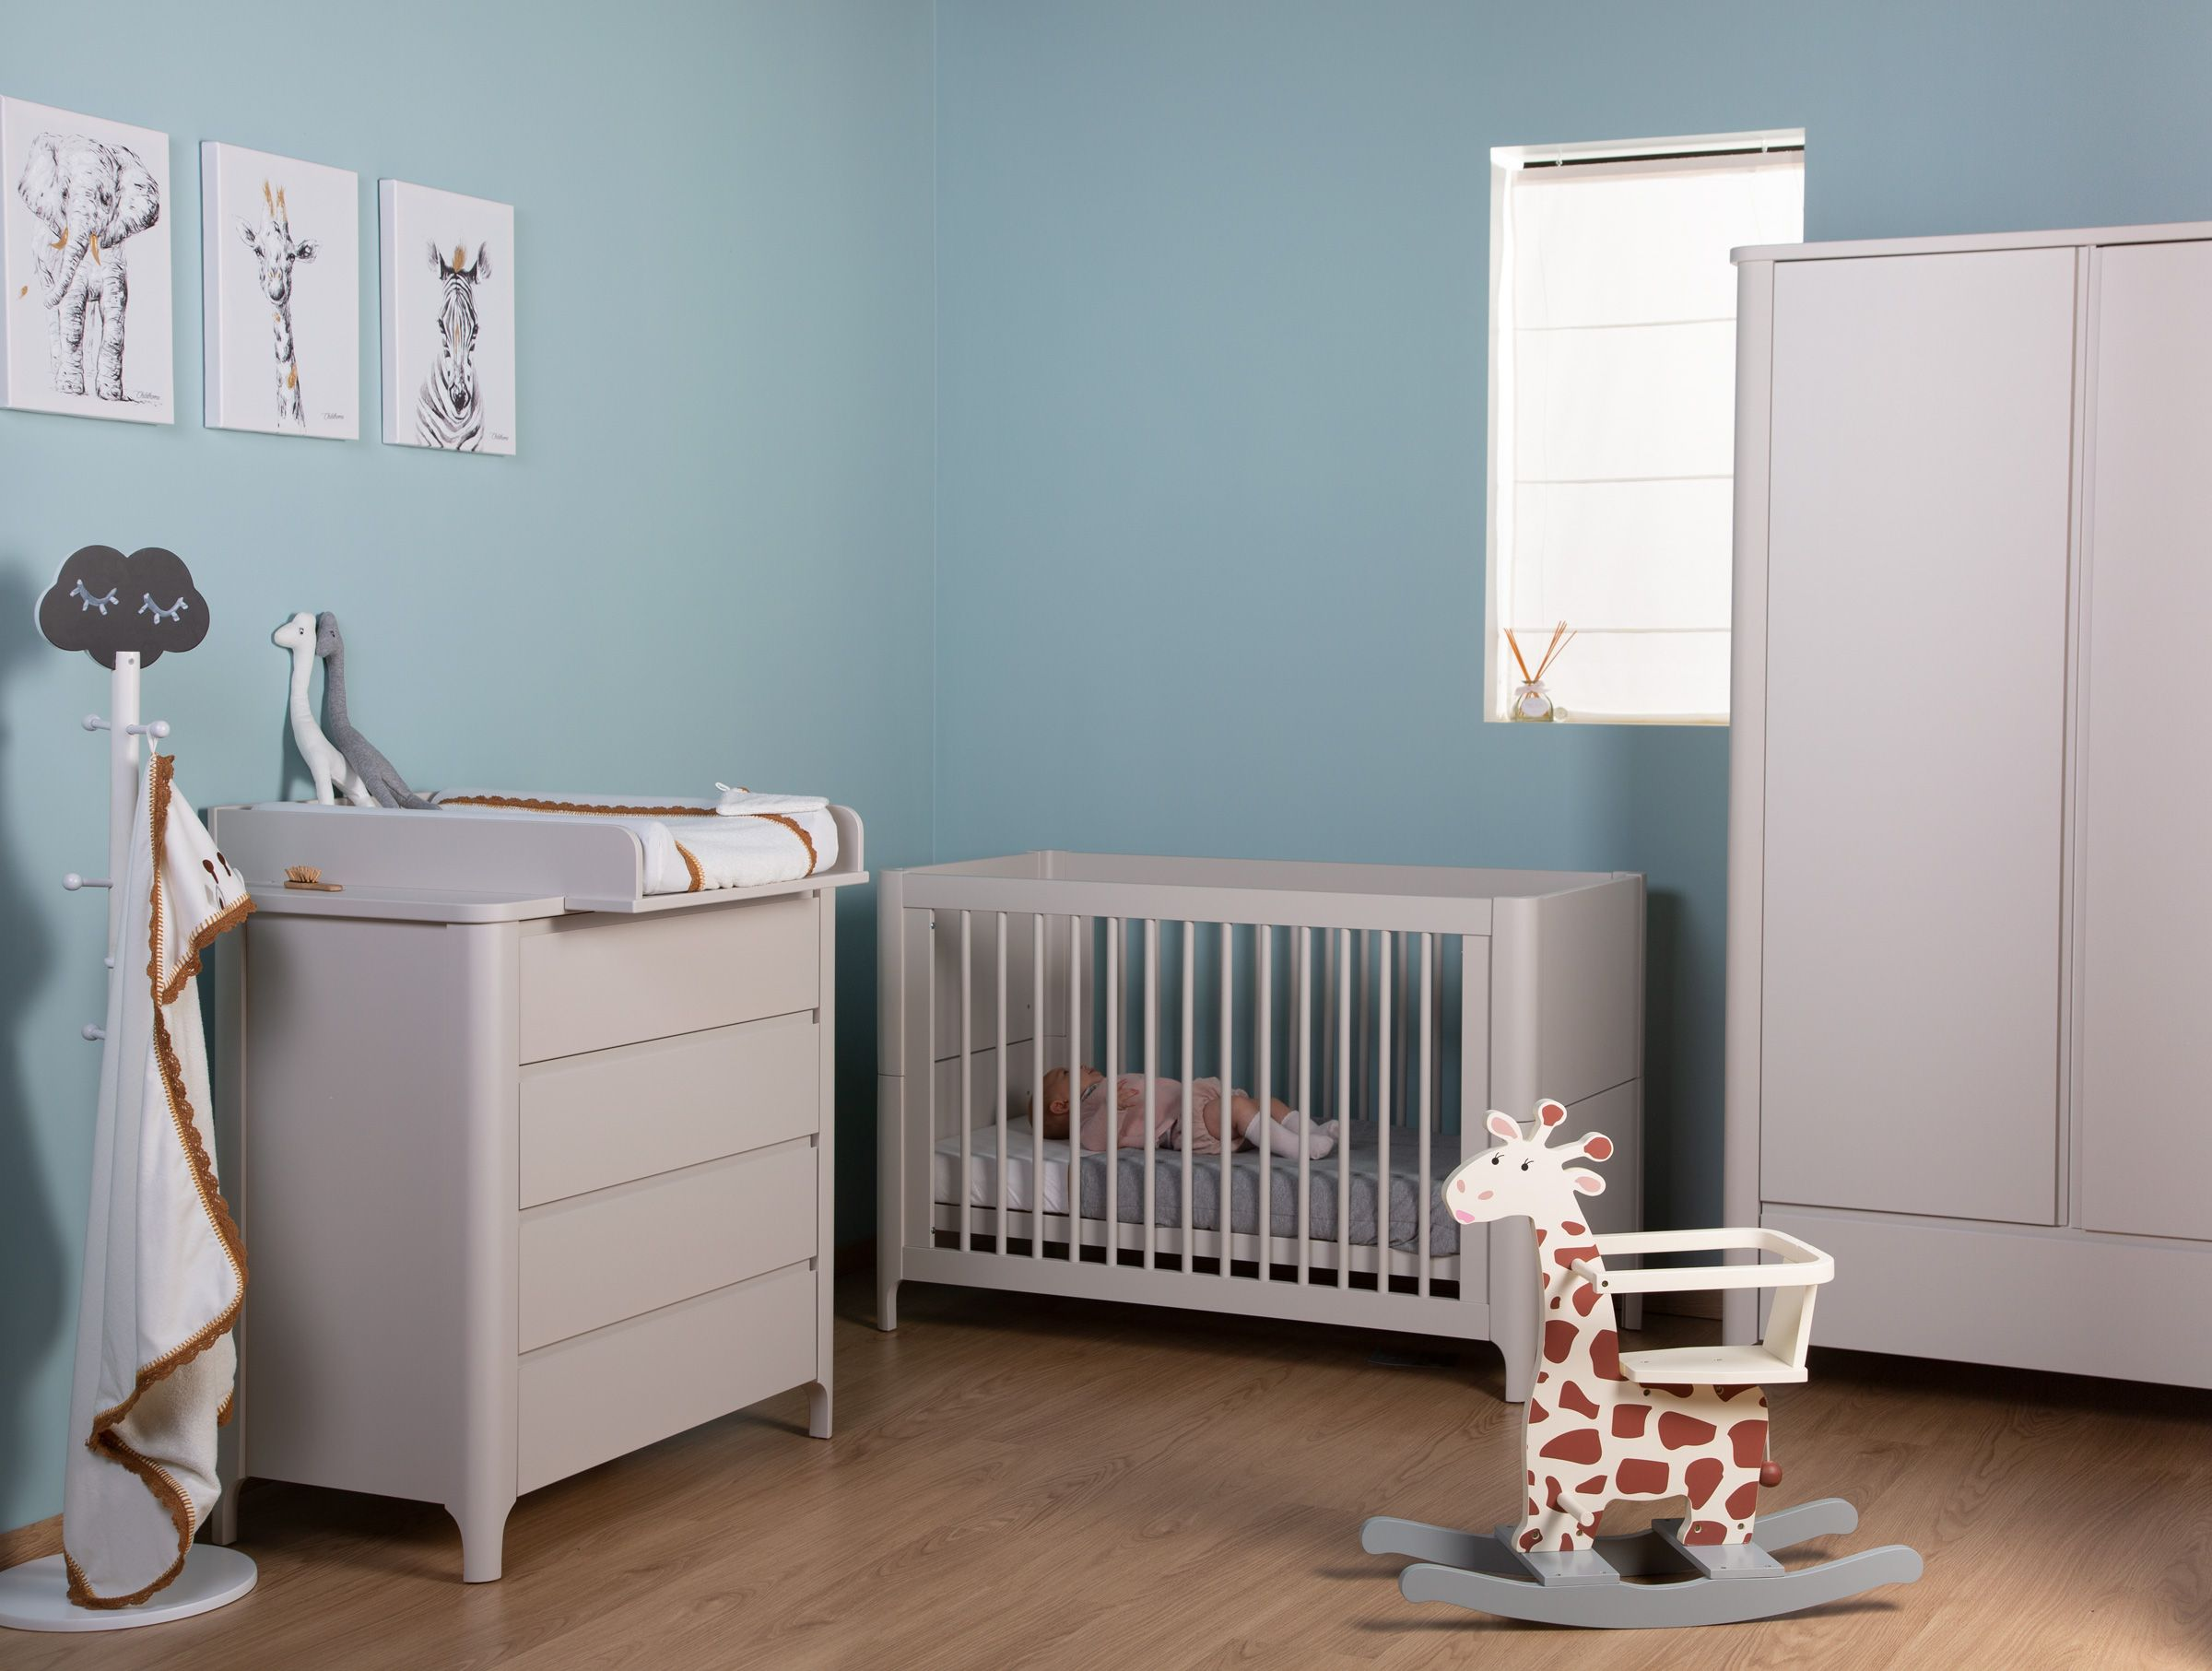 The Rockford Sands Baby Room Has A Soft